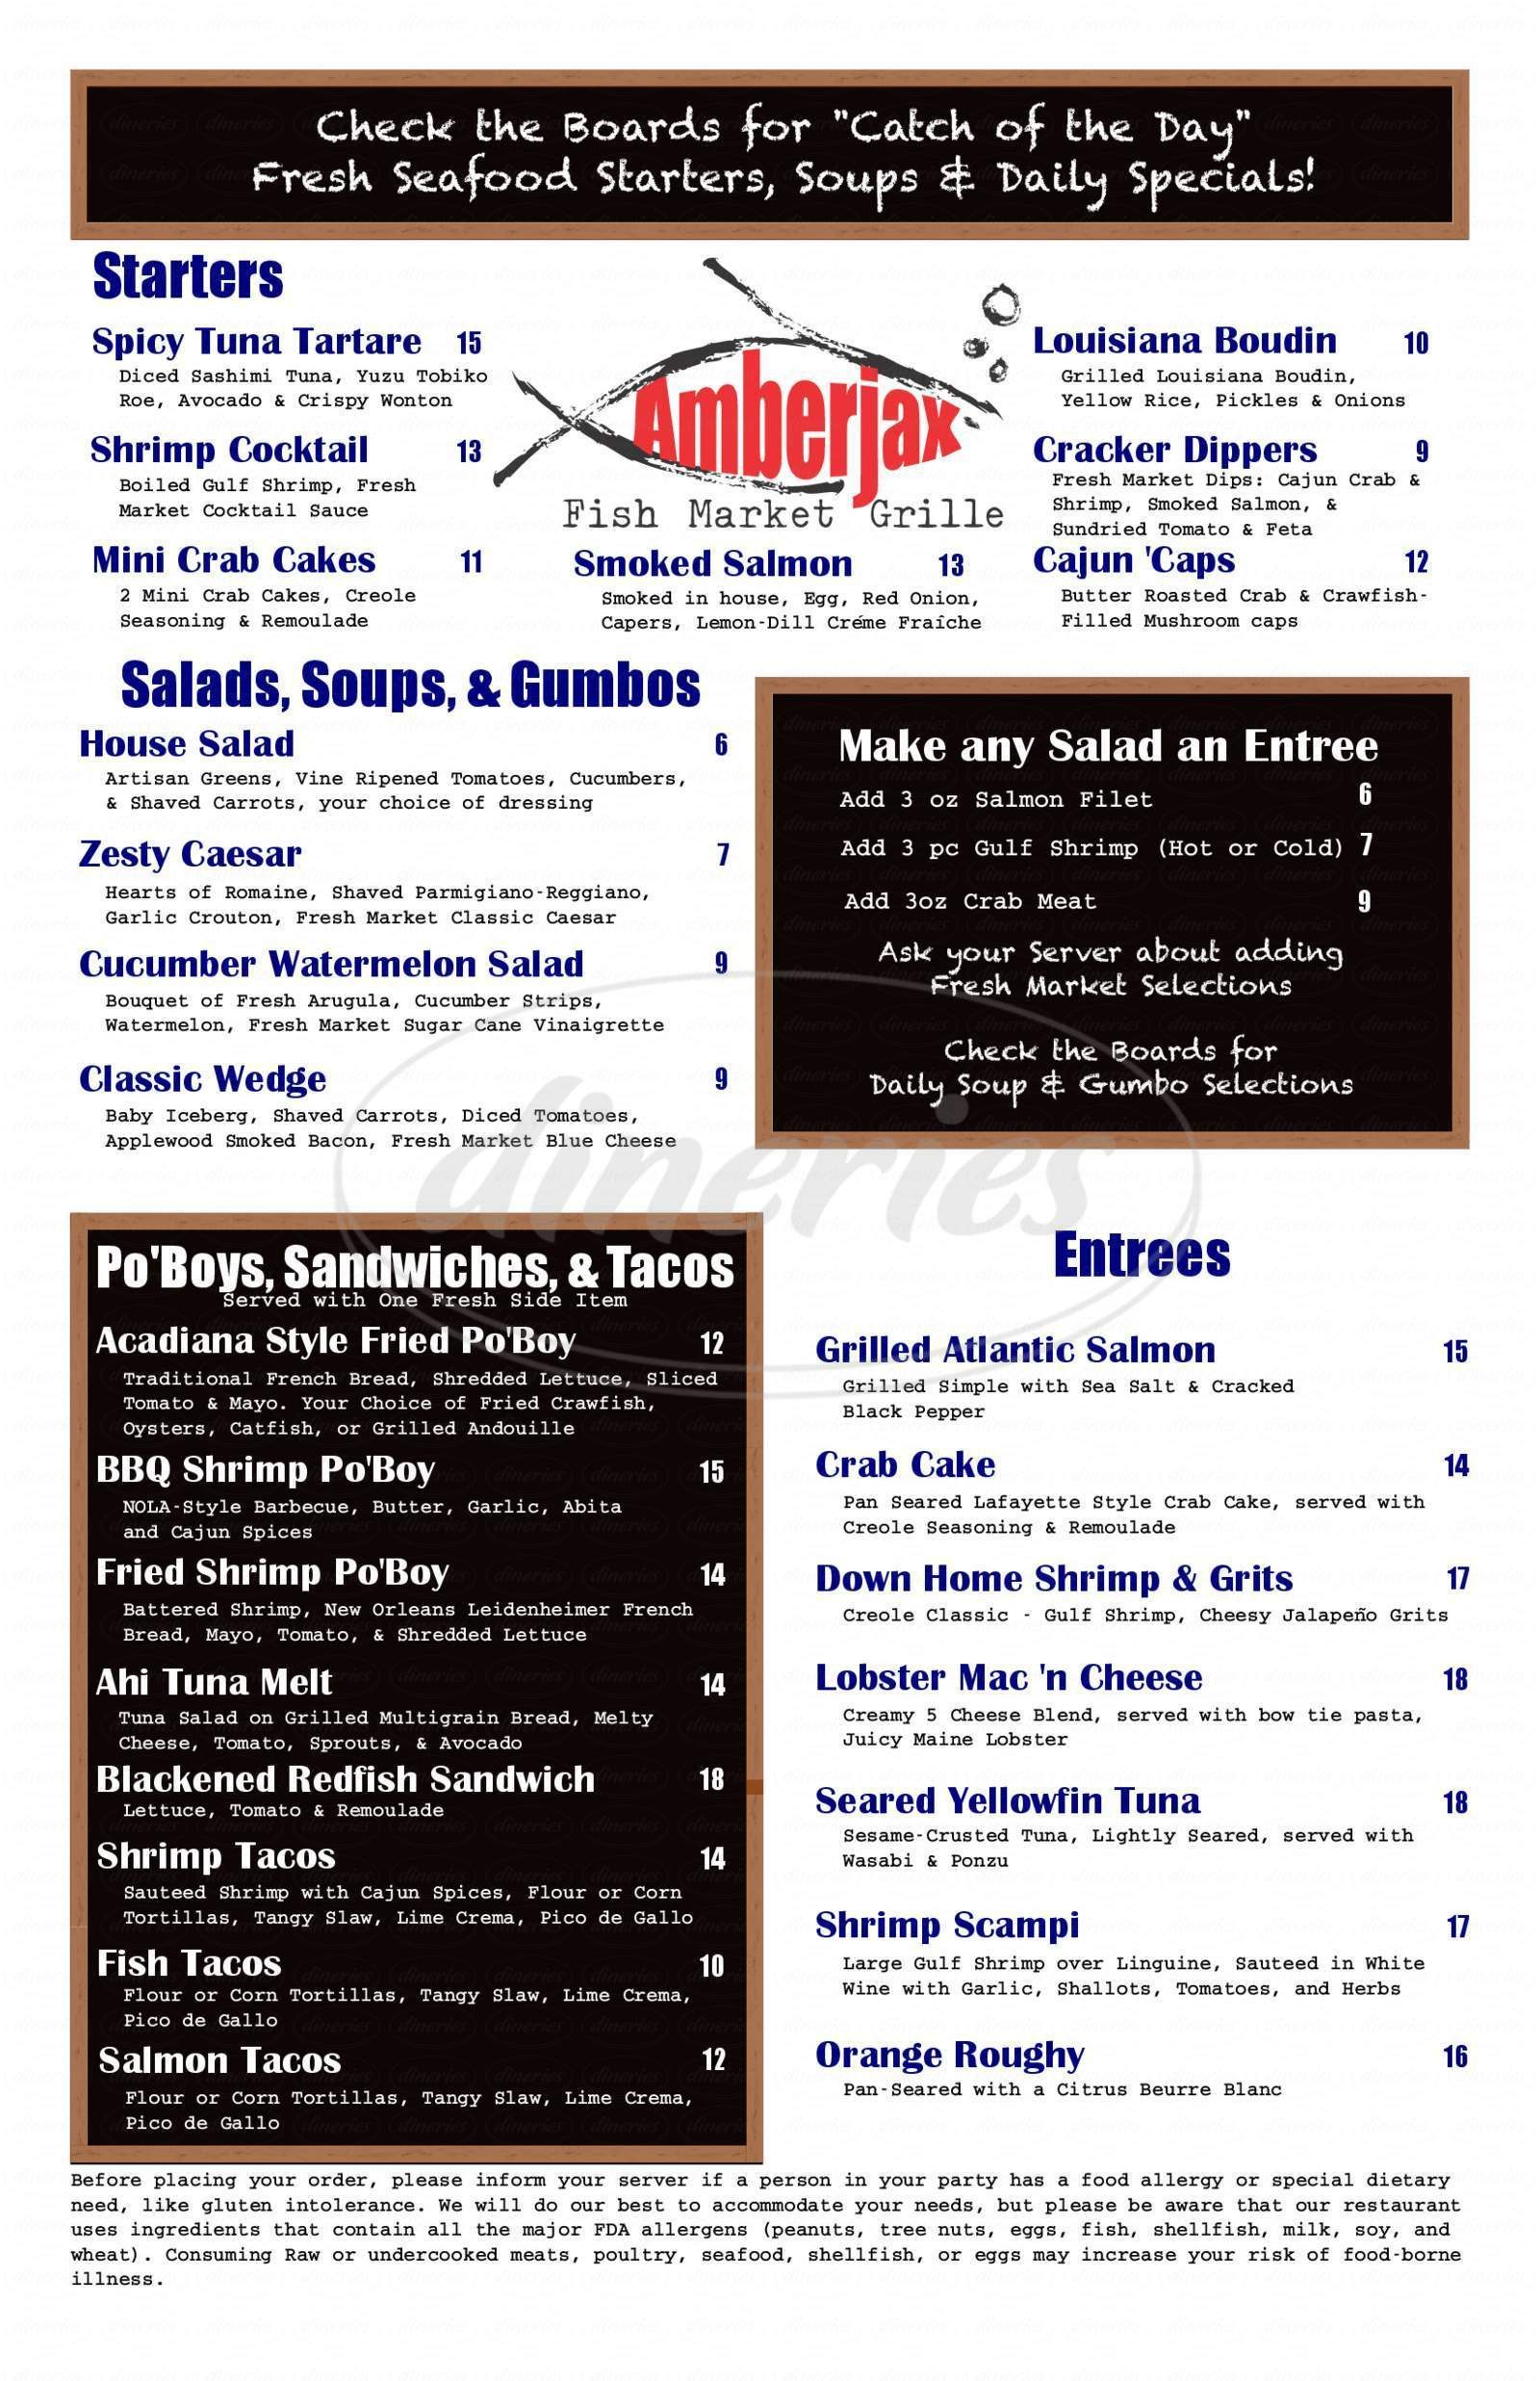 menu for Amberjax Fish Market Grille